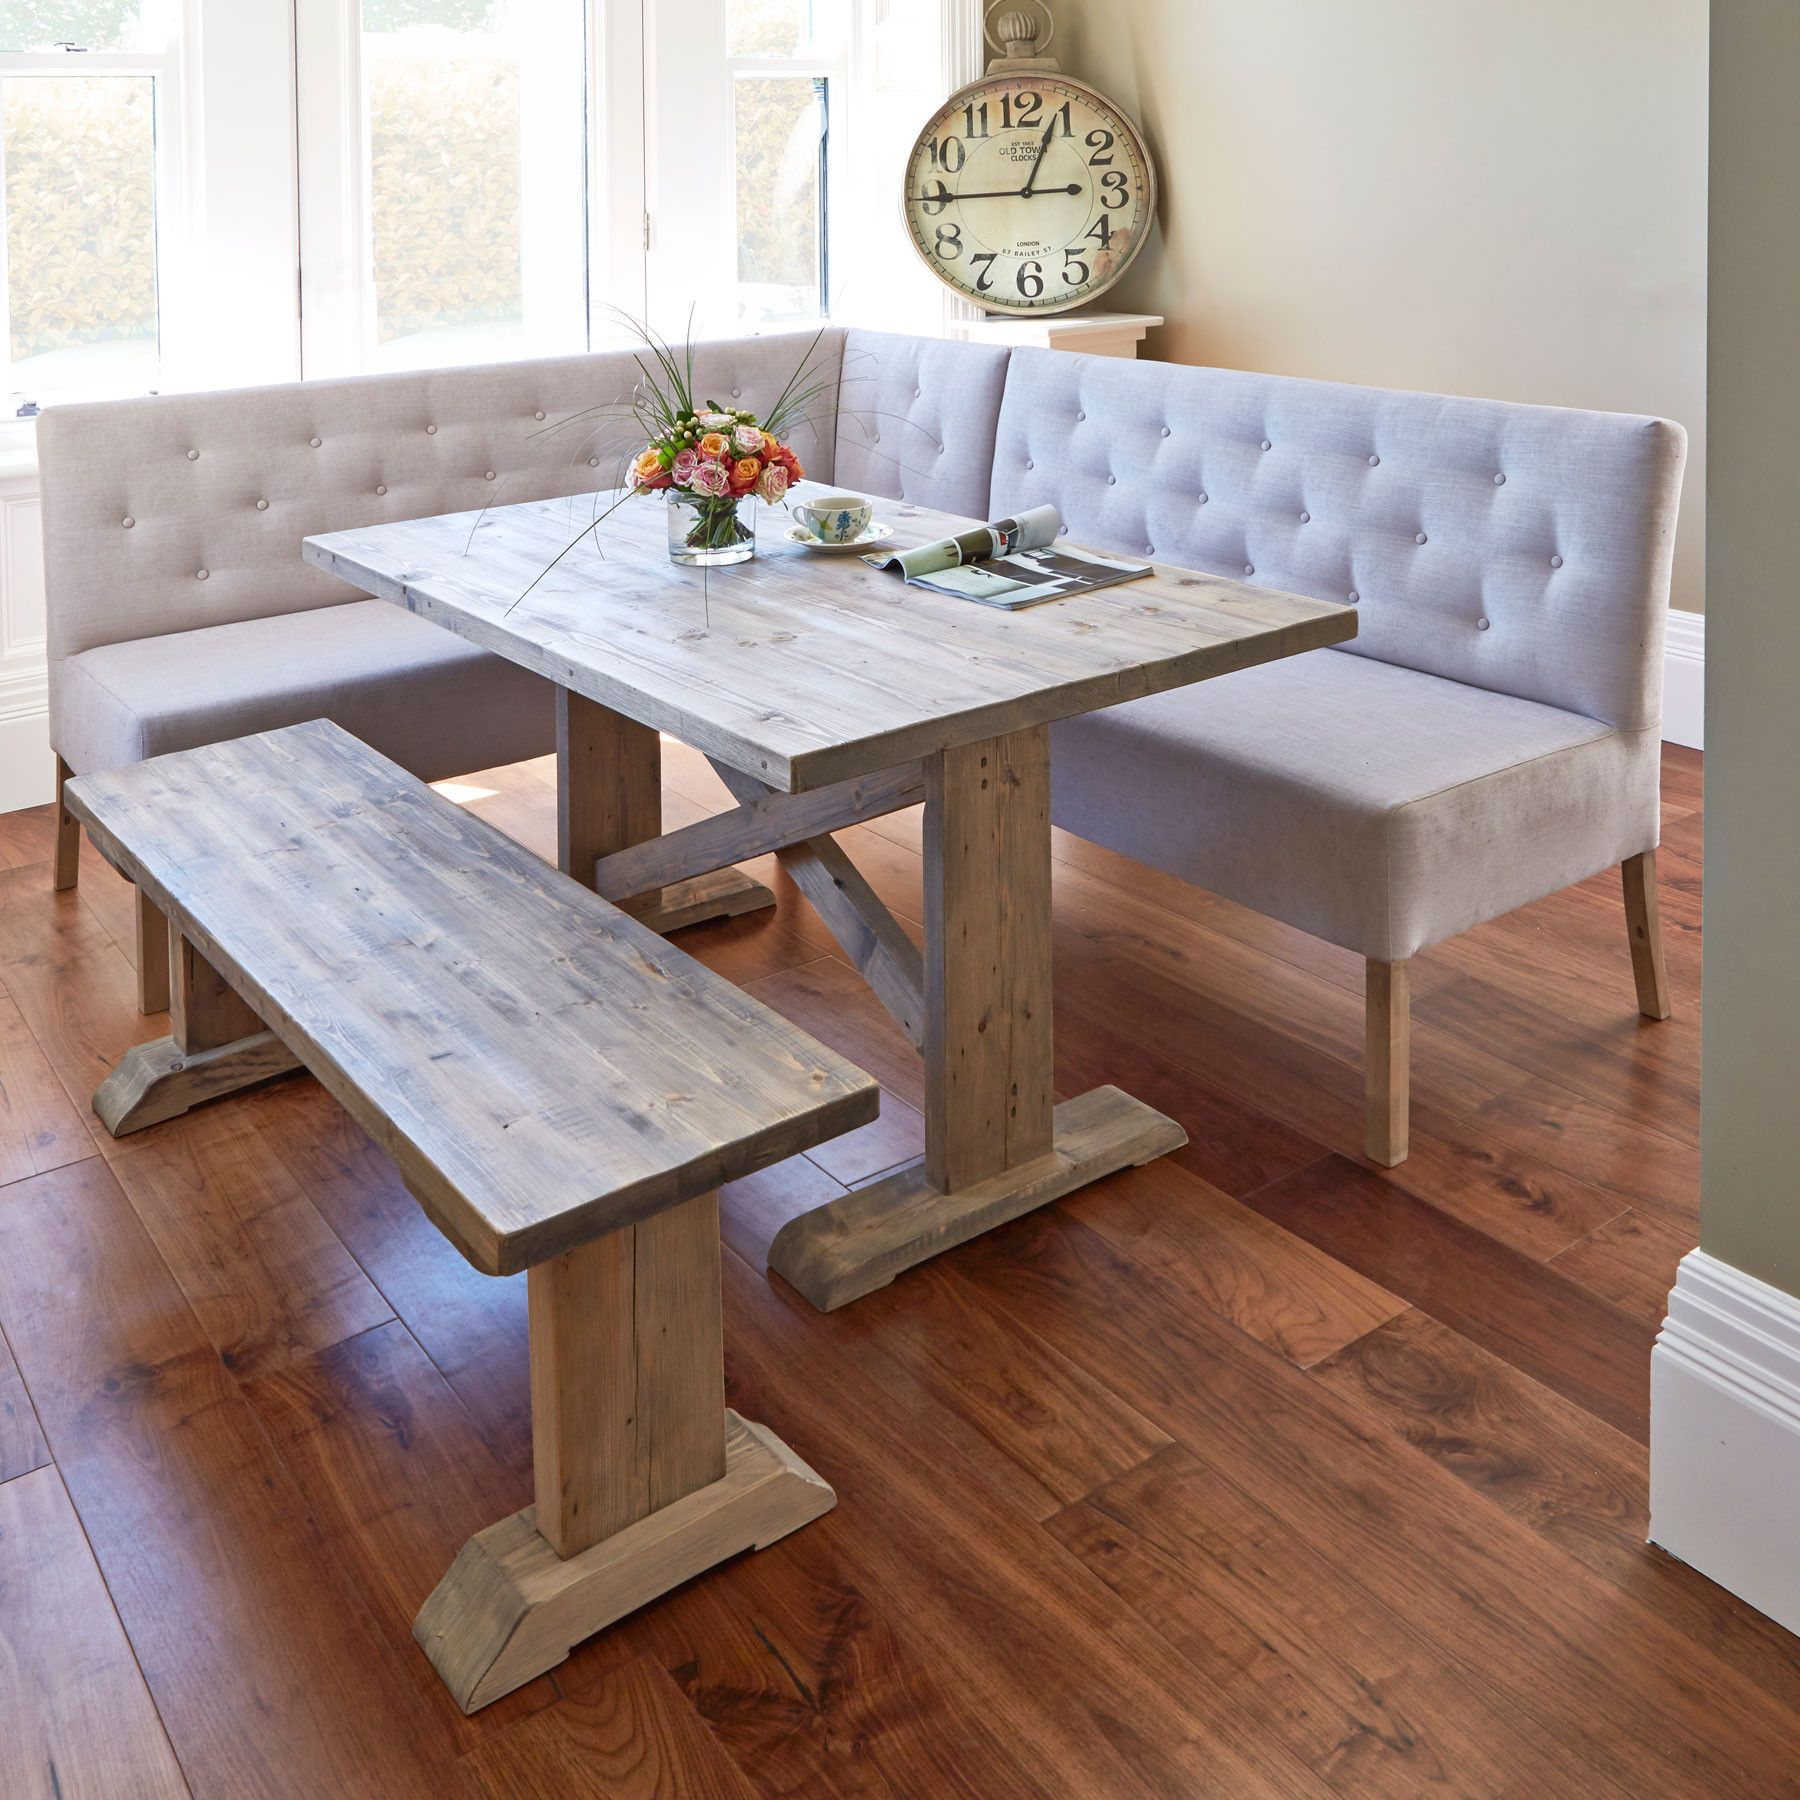 Dinette Bench Seating: Alina Dining Table With Corner And Small Bench